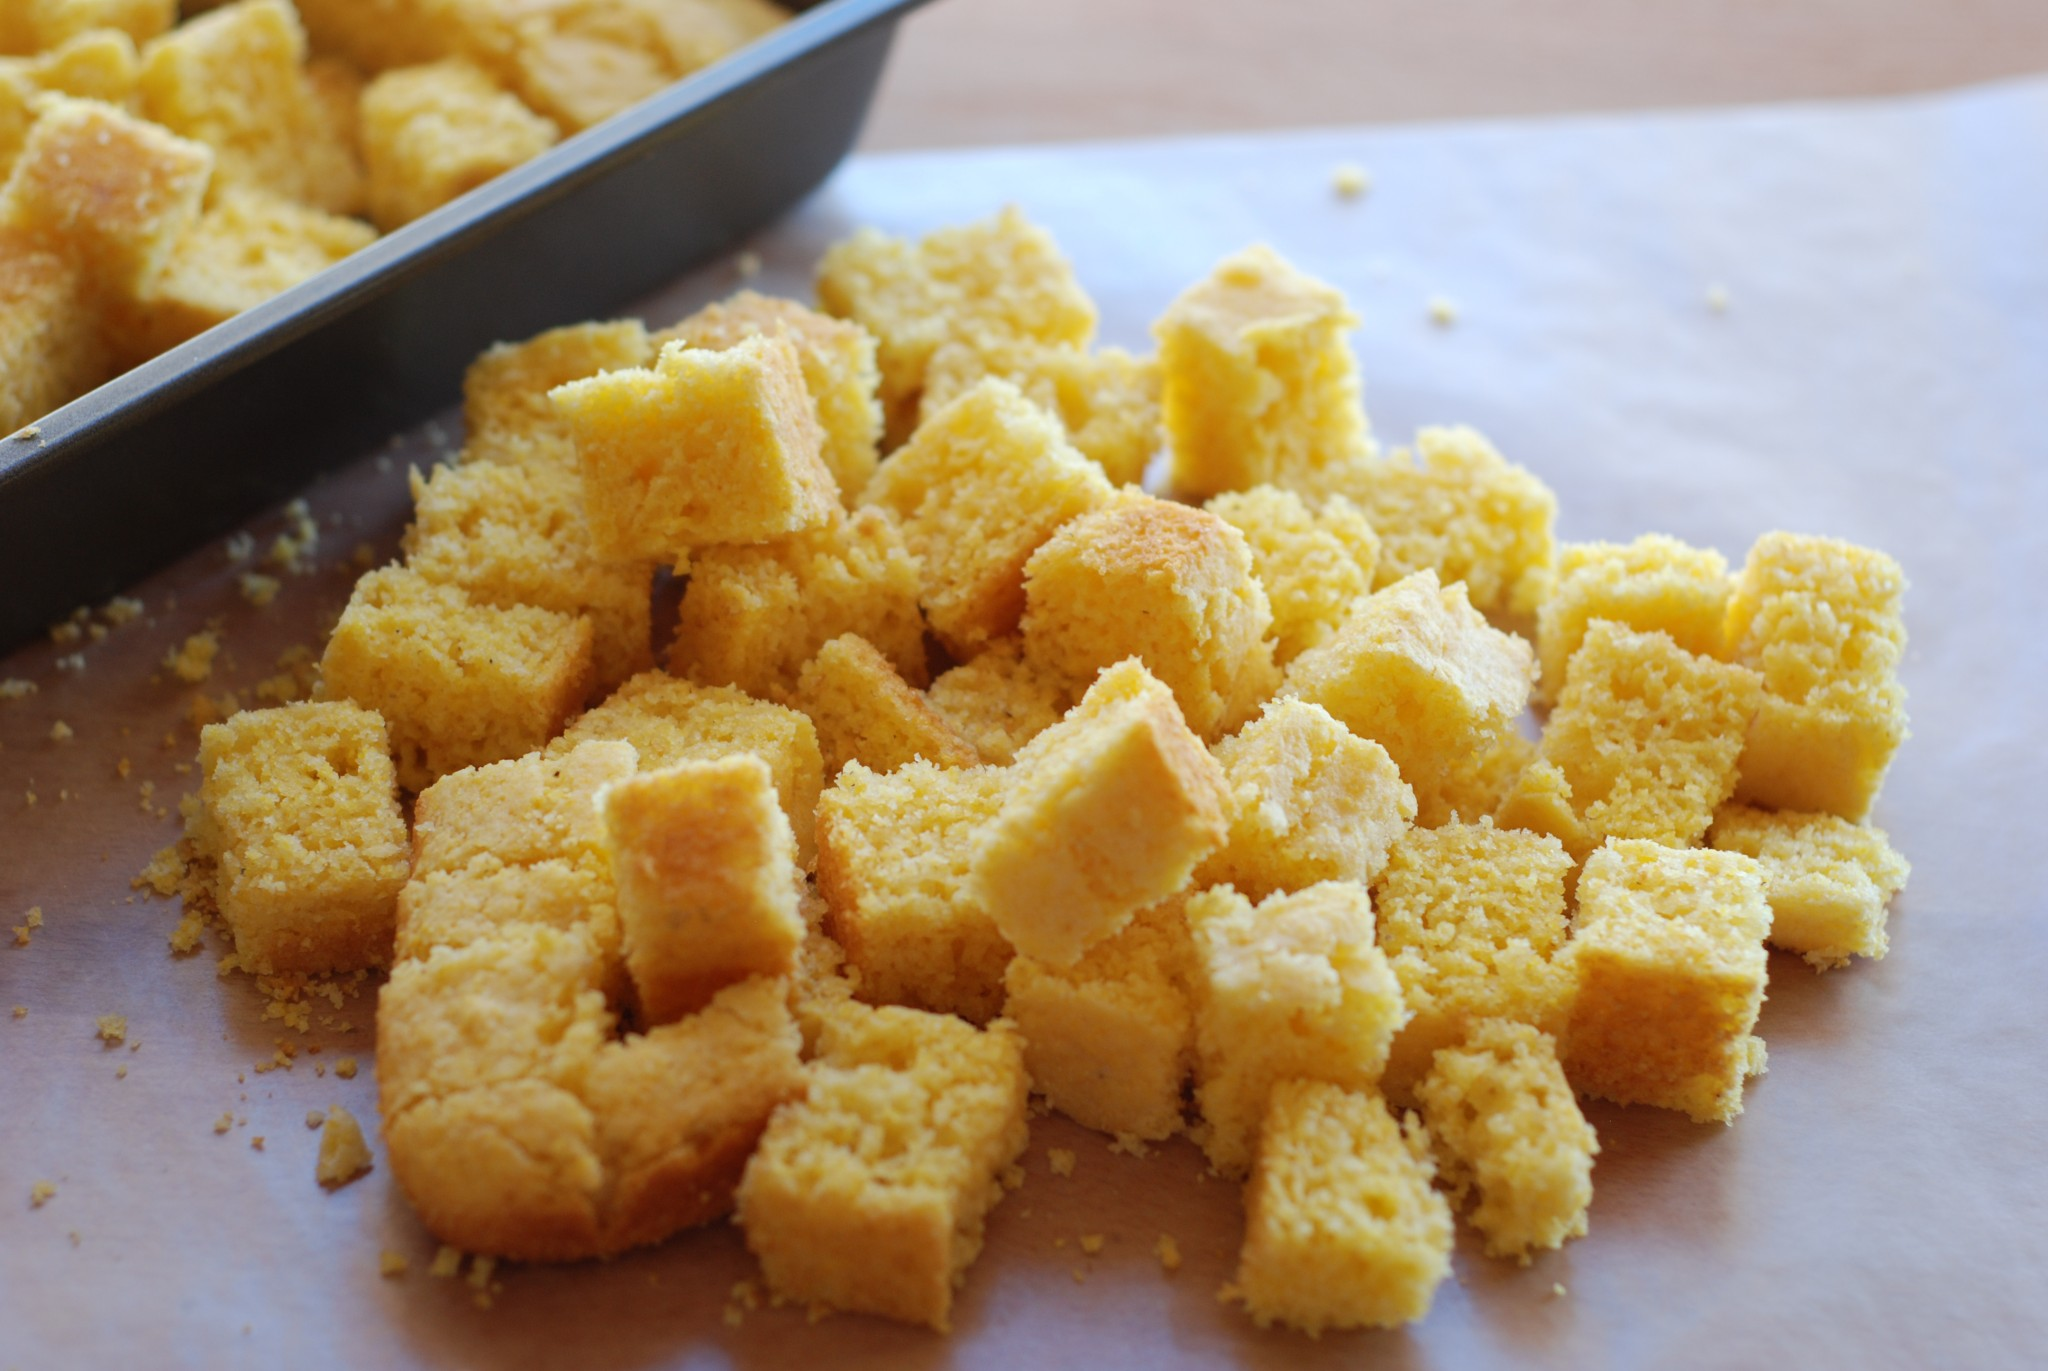 delicious gluten free cornbread is both sweet and savory - perfect for Thanksgiving stuffing!